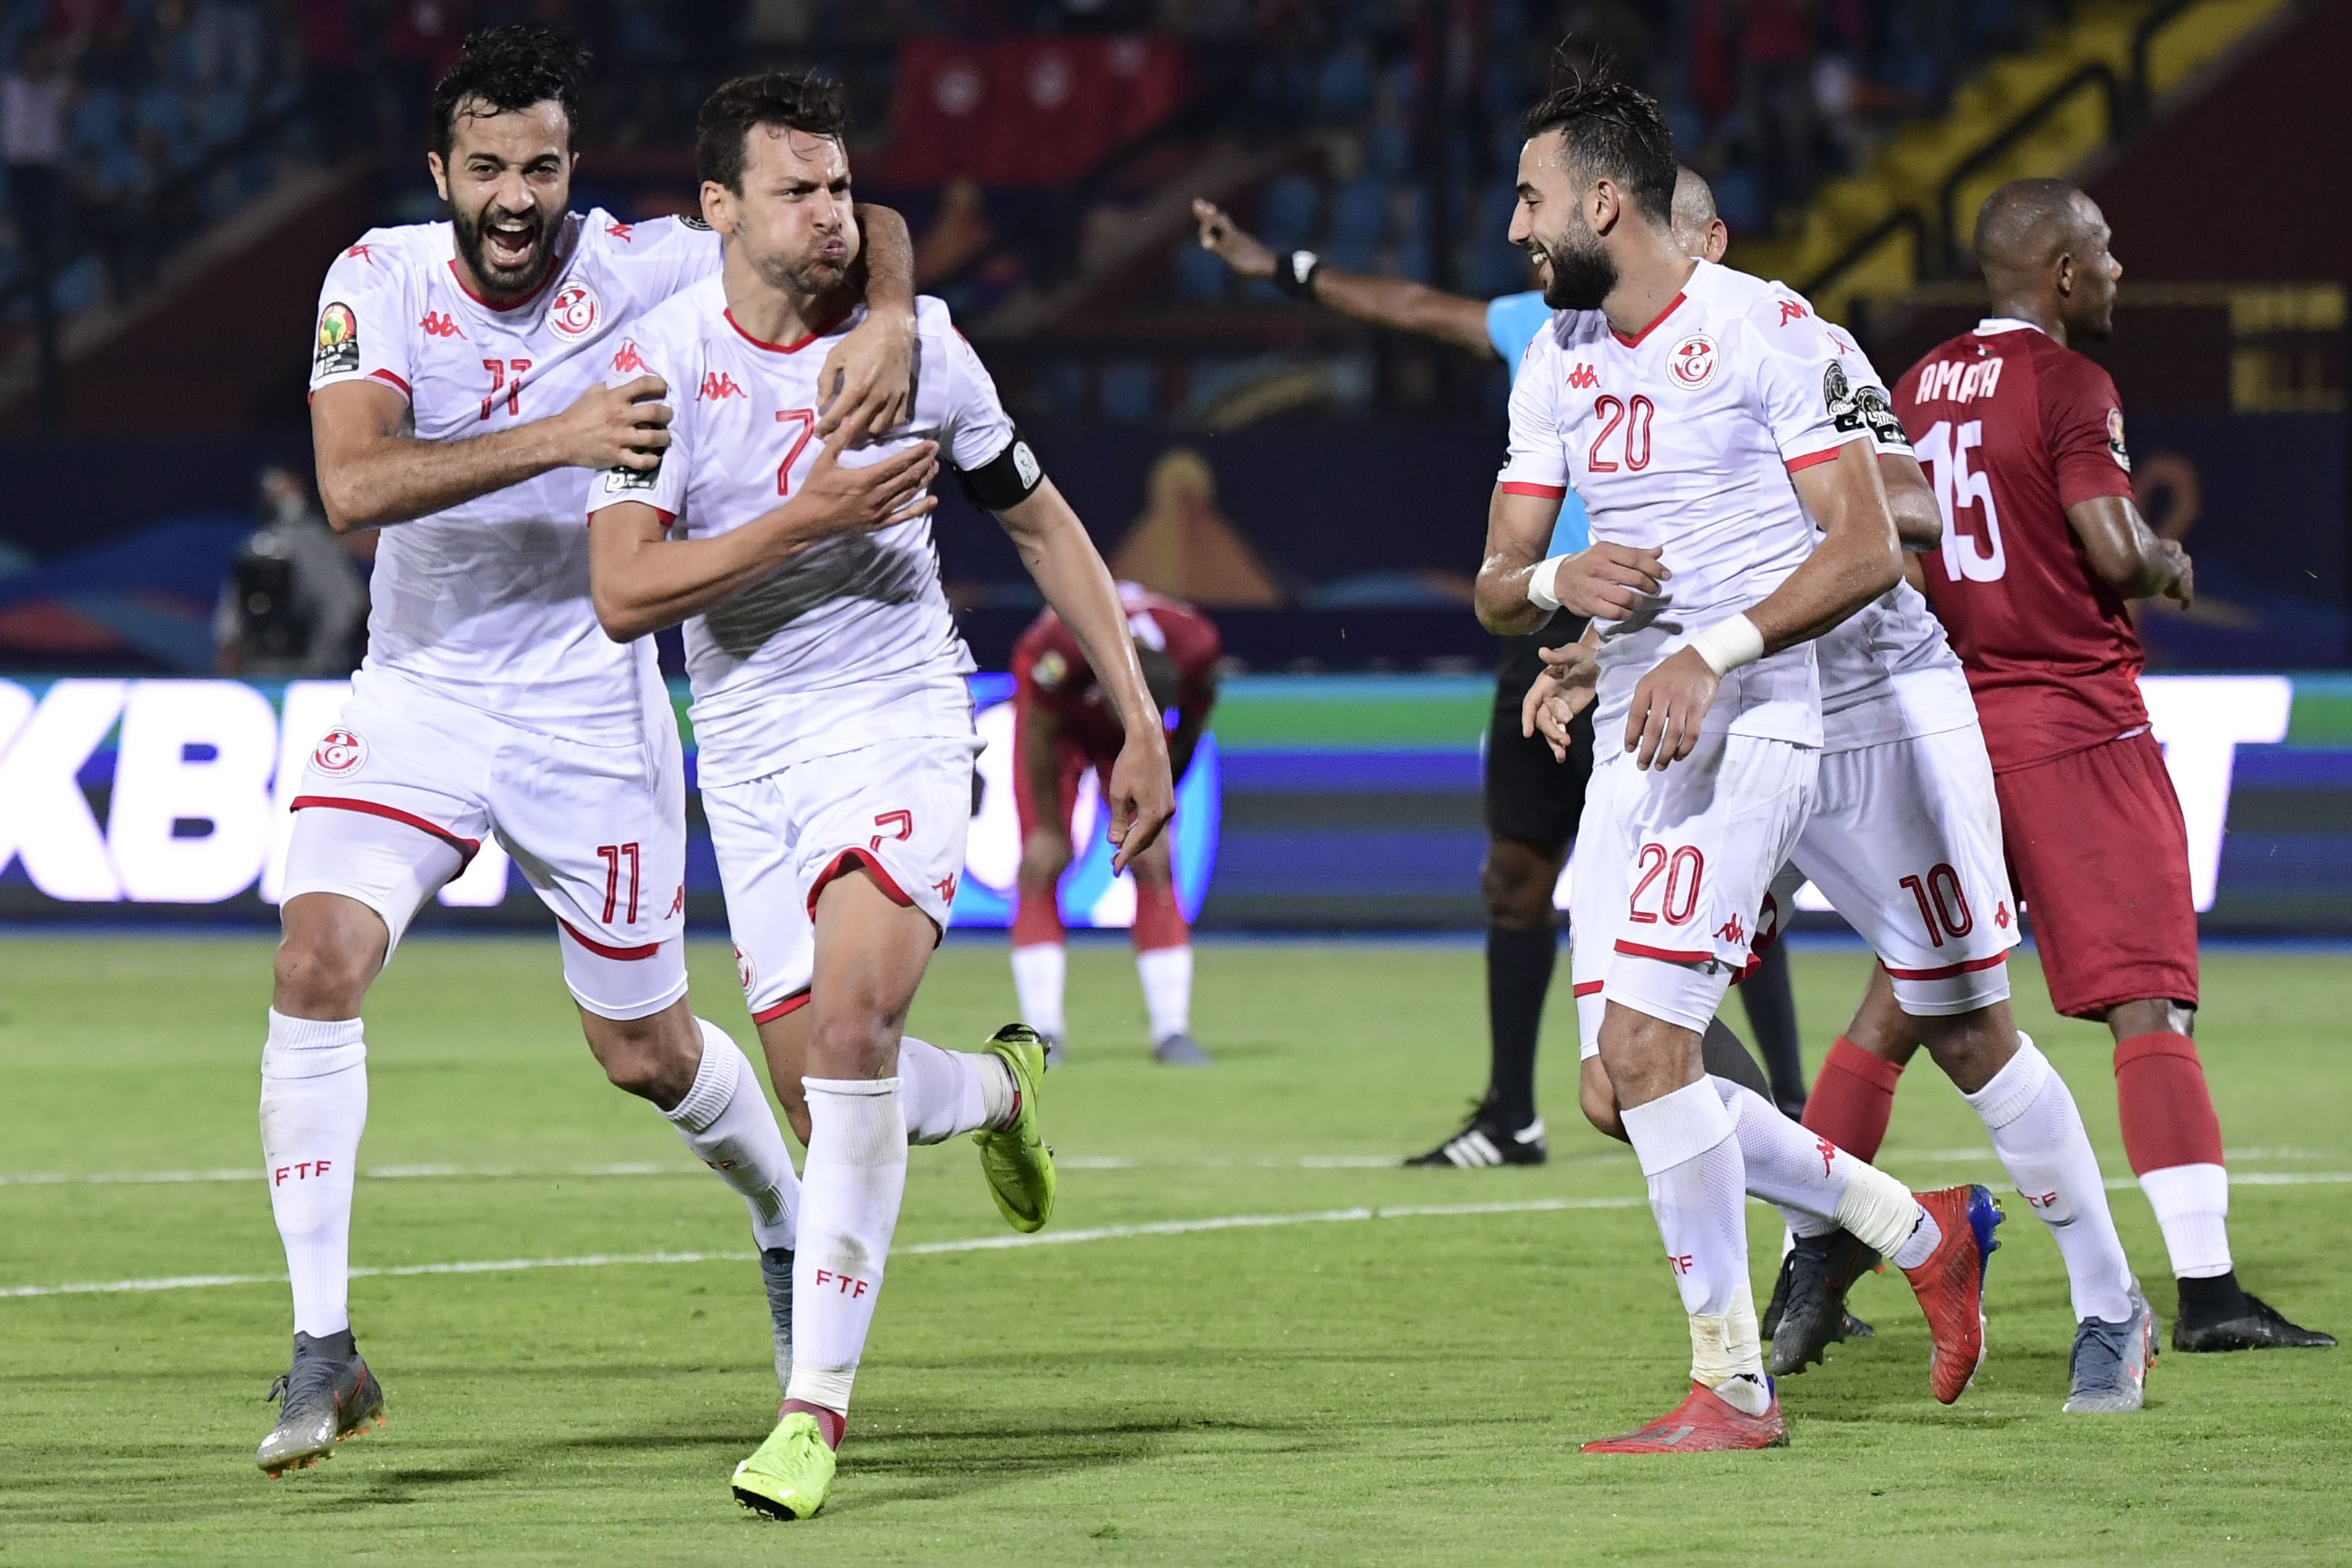 Tunisia's midfielder Youssef Msakni (C) celebrates after scoring a goal during the 2019 Africa Cup of Nations (CAN) quarter final football match between Madagascar and Tunisia